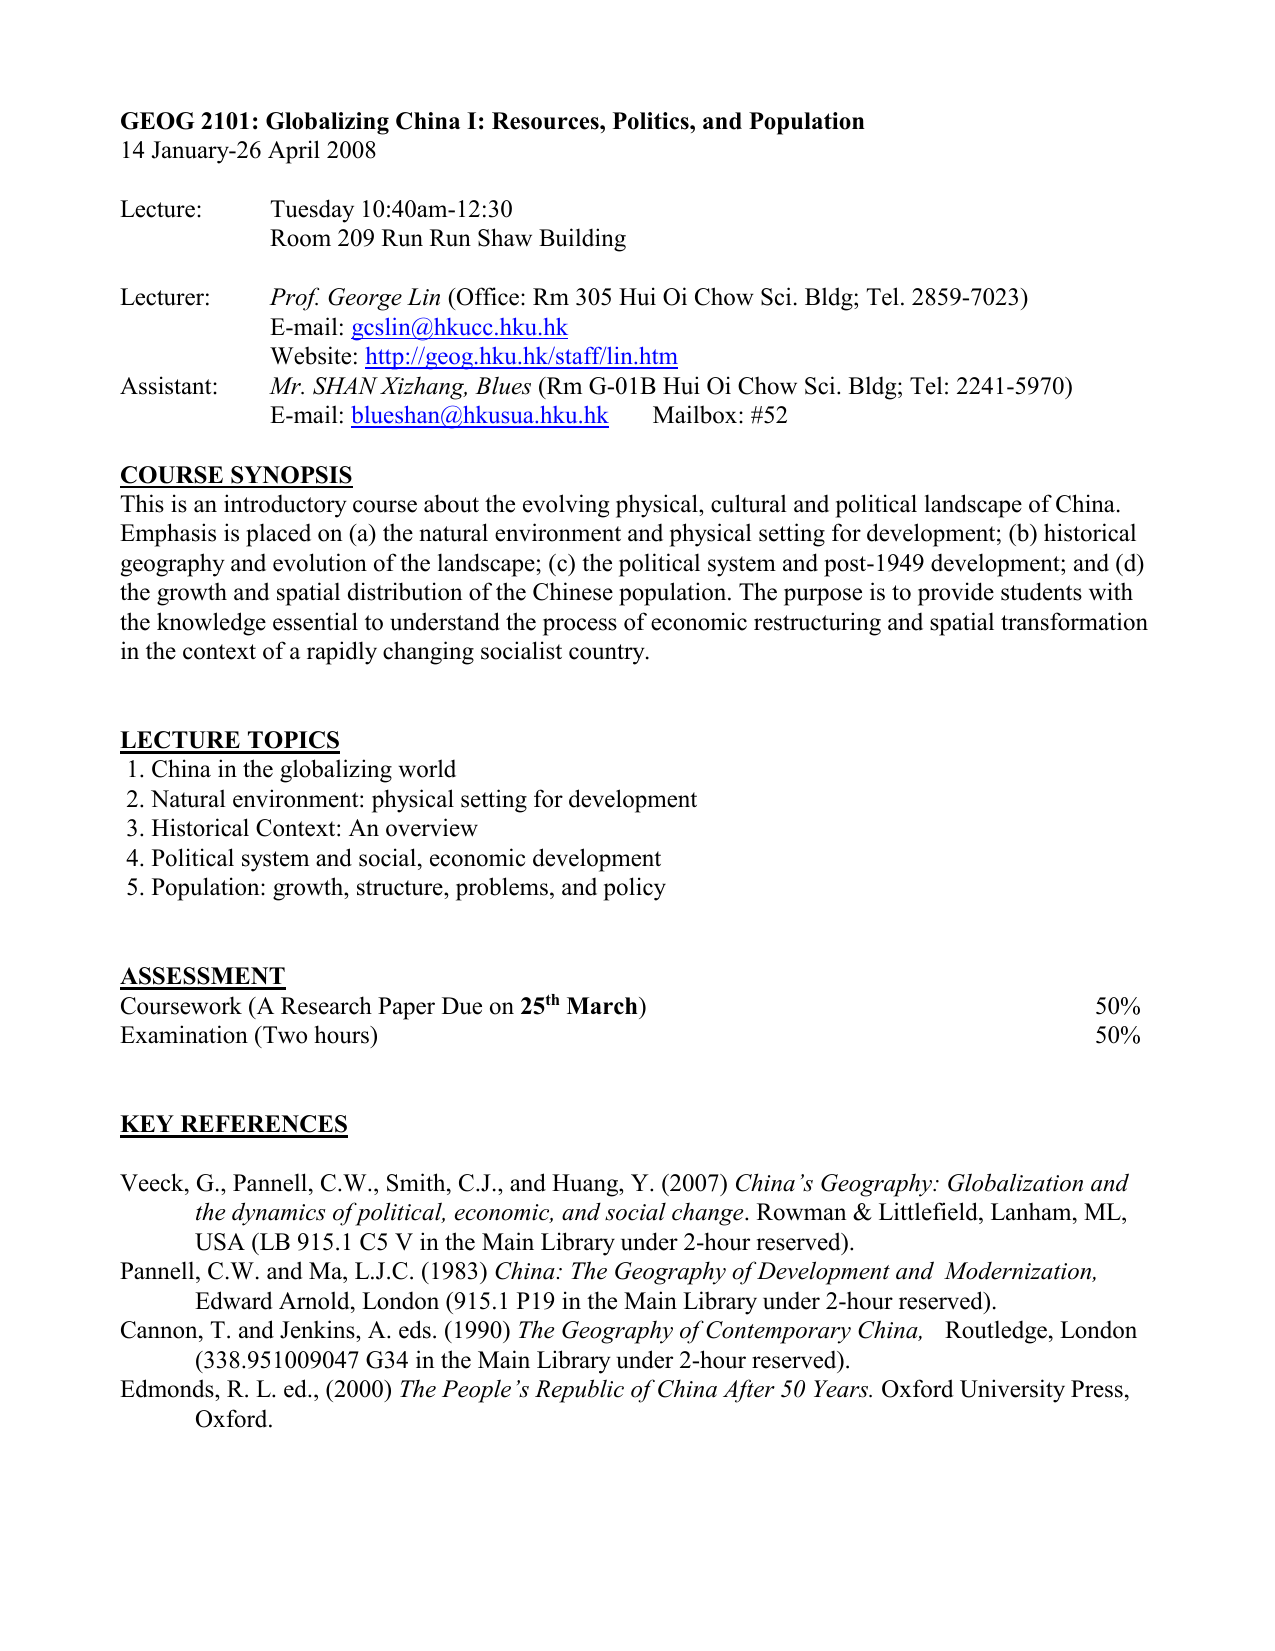 012 Chinese Economy Research Paper Topics 010117467 1 Awful Full